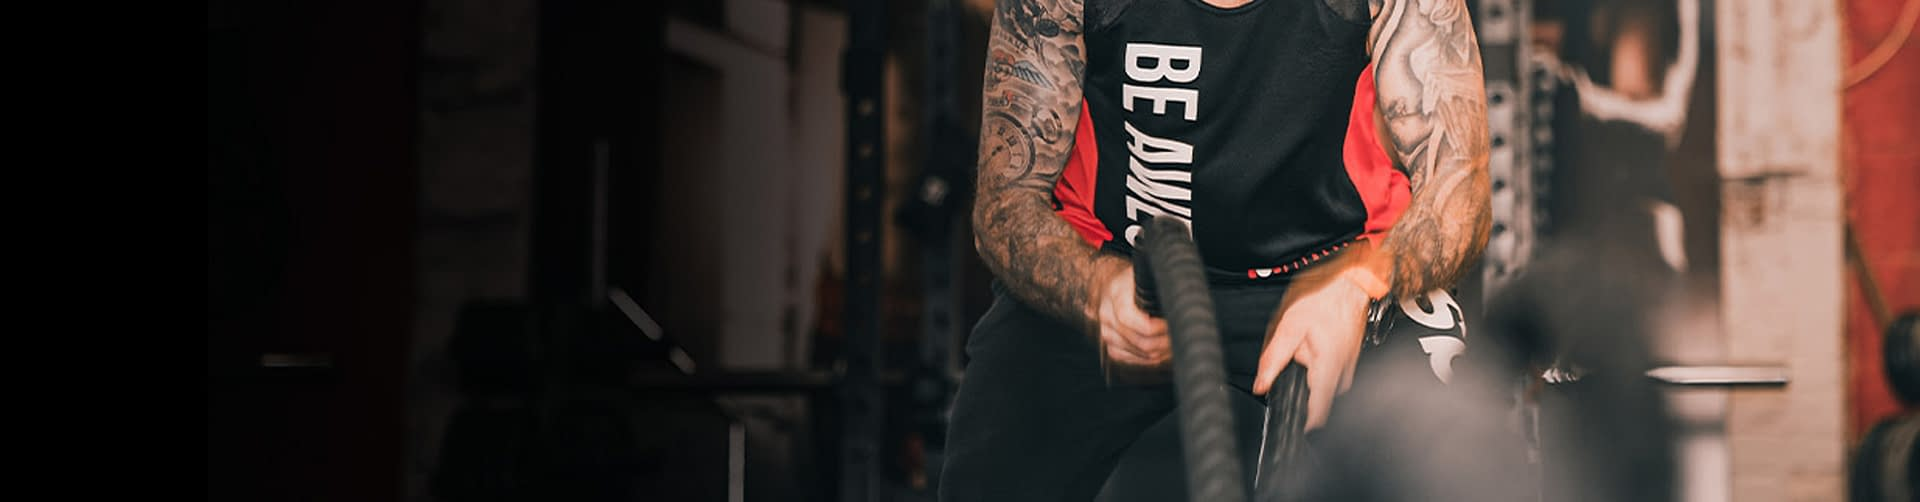 Be-Awesome-fitness-Instructor rob seaward battle ropes